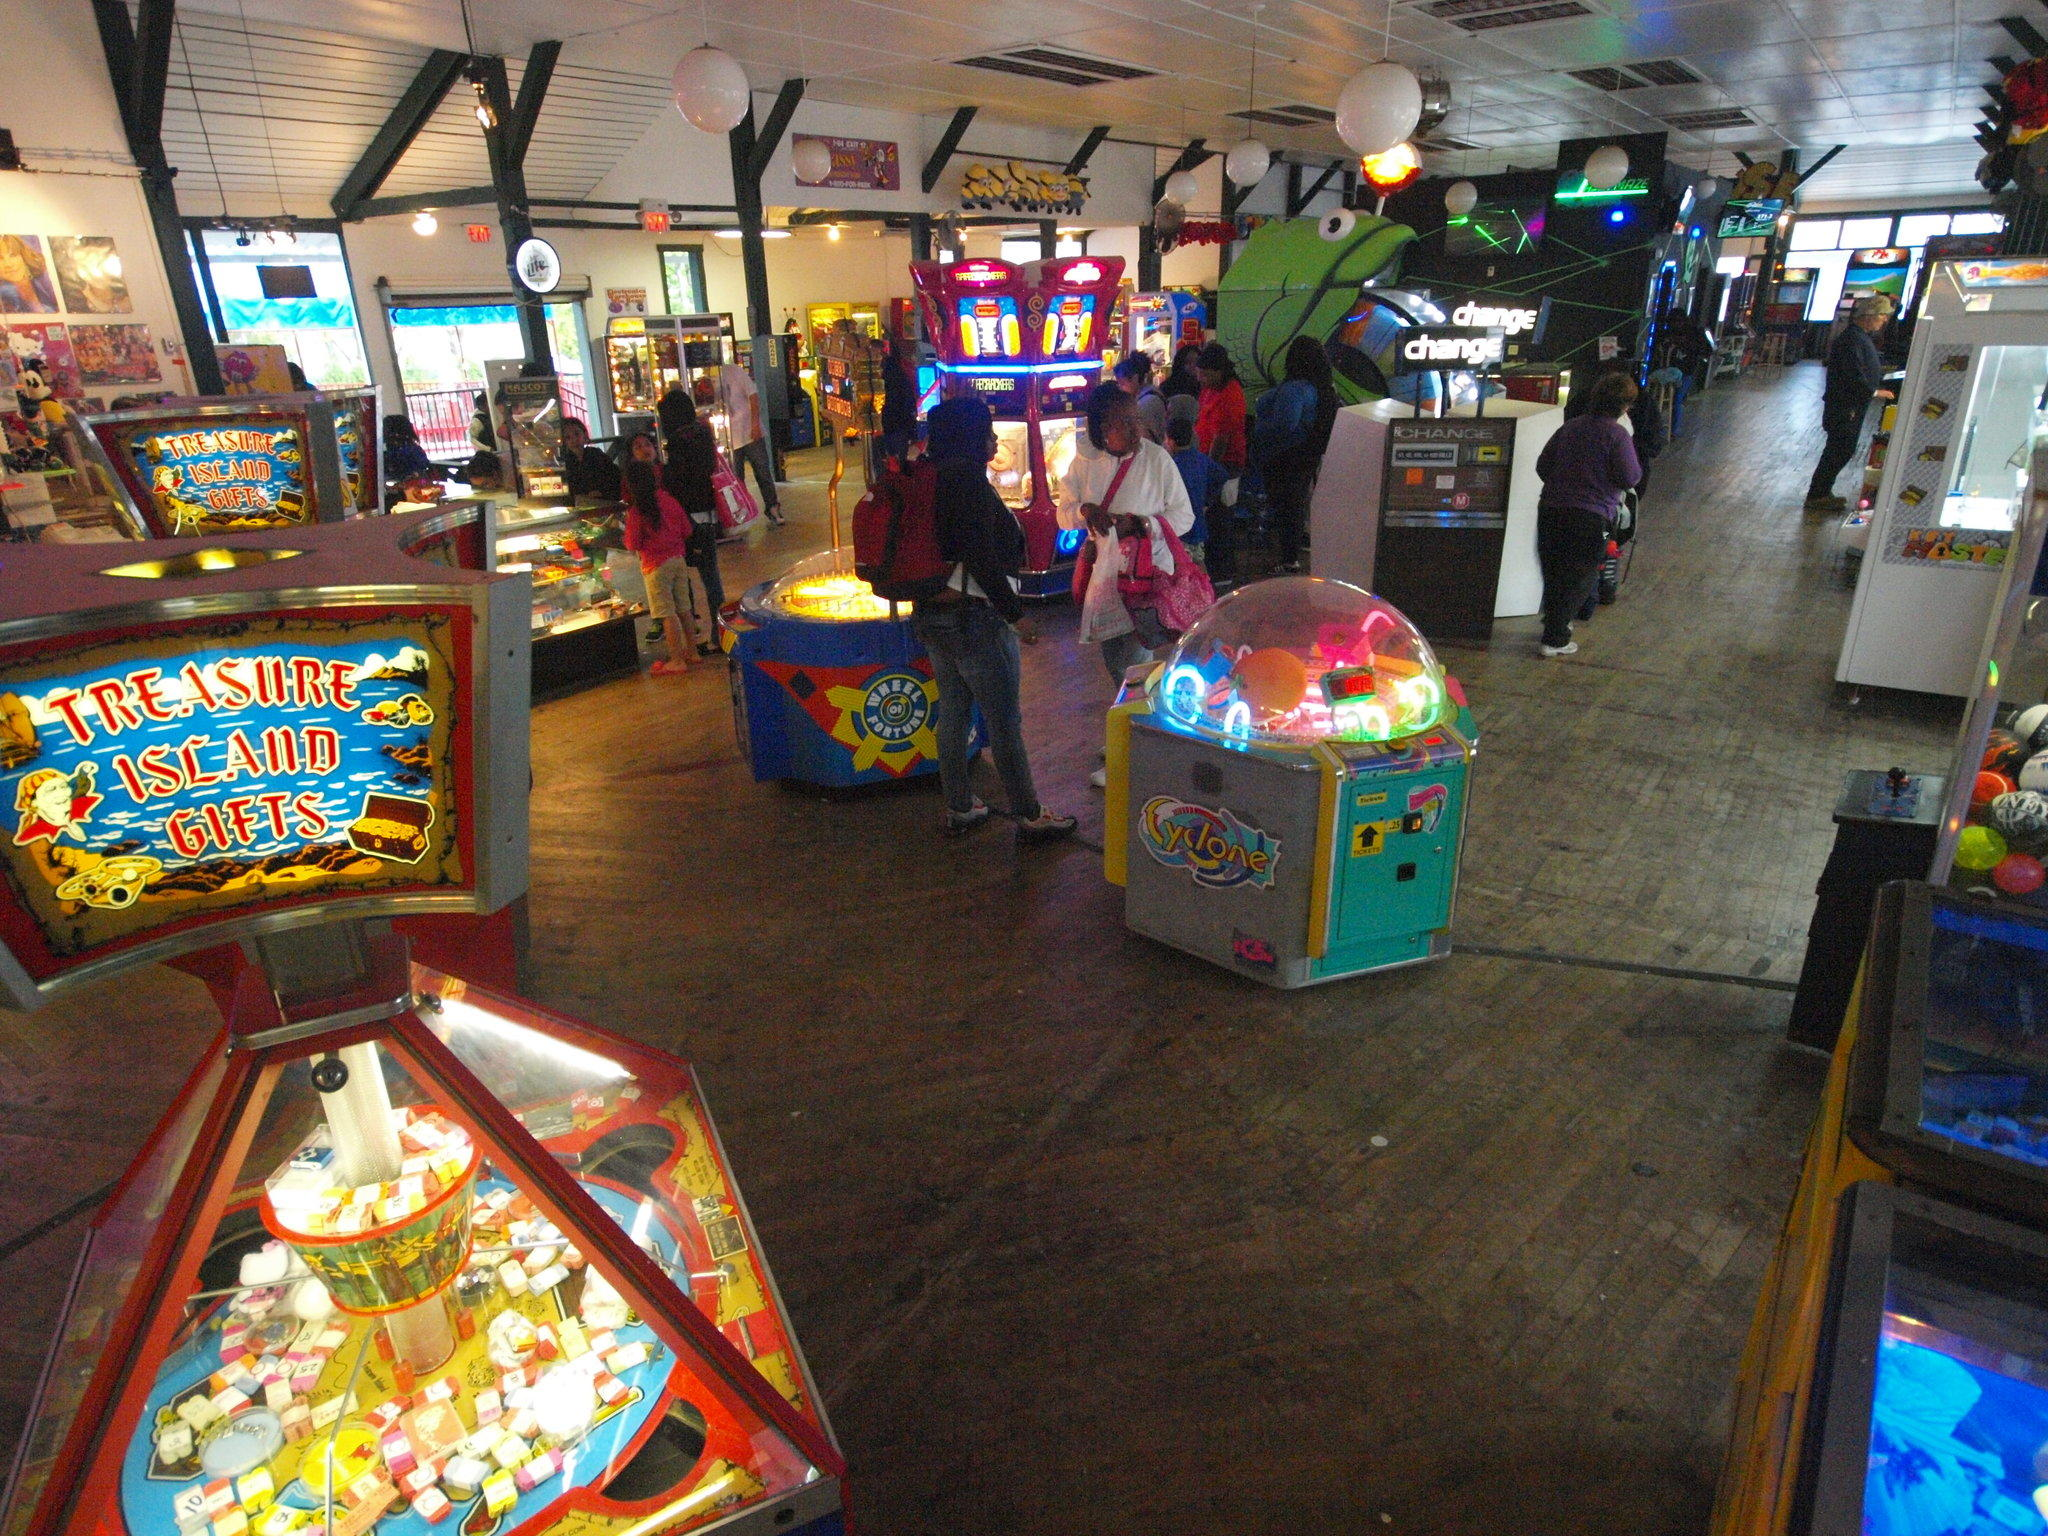 Quassy's huge arcade is going virtually cashless this season with a new state-of-the-art system.